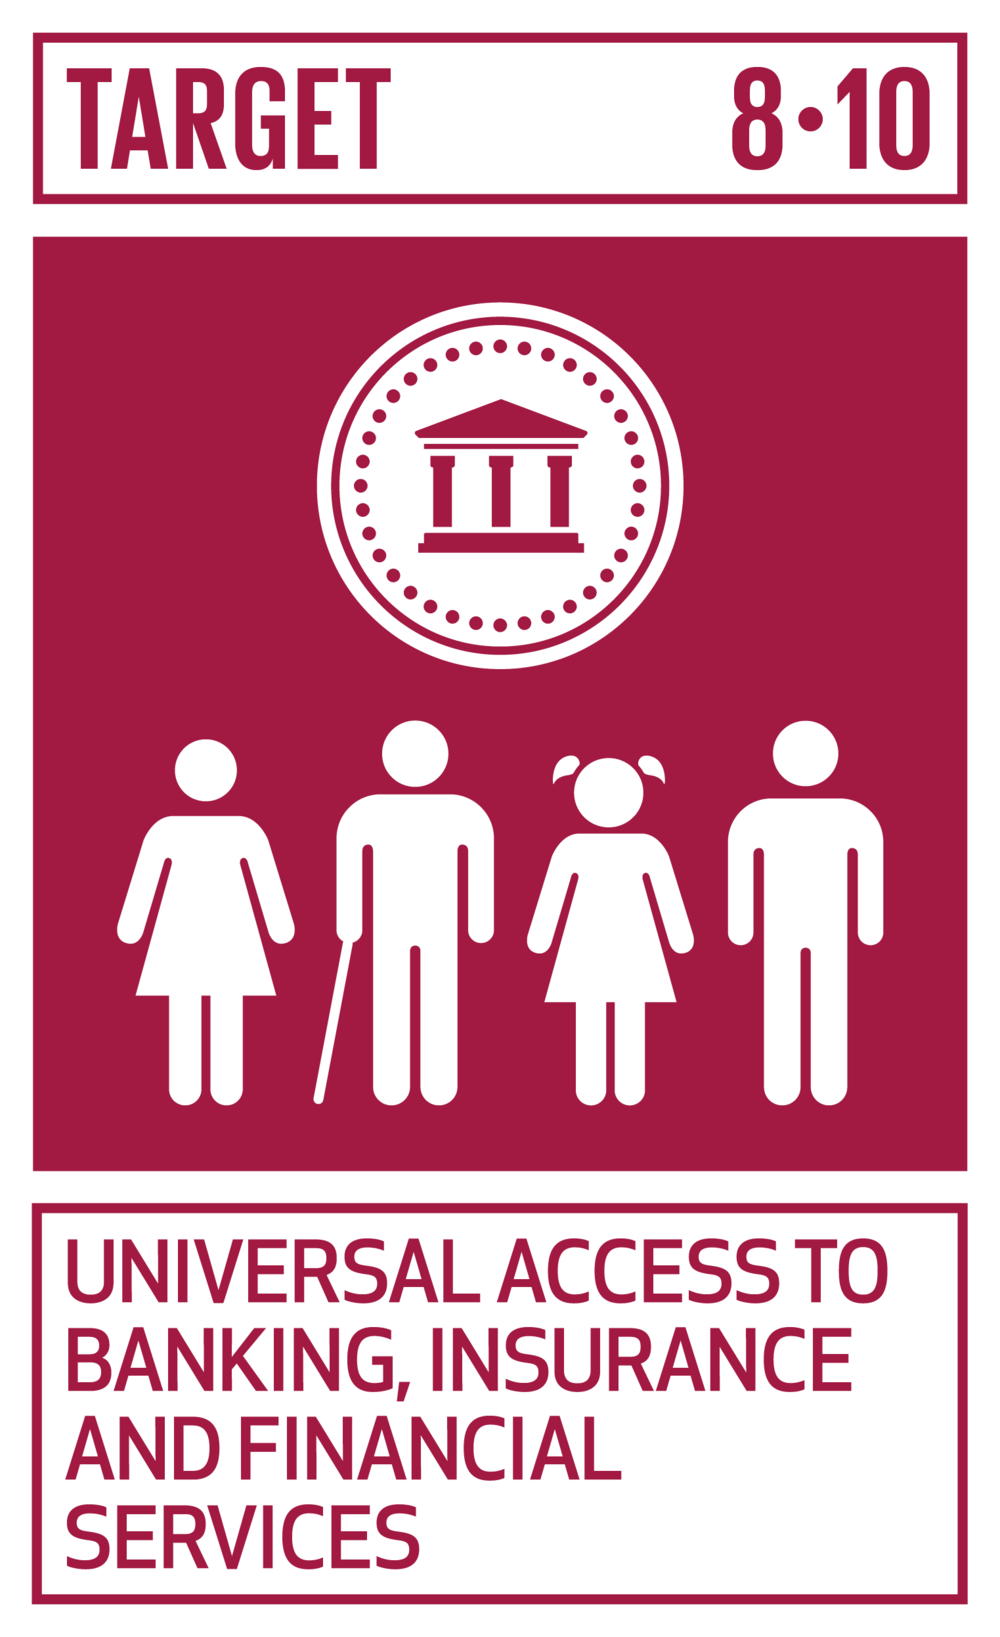 Strengthen the capacity of domestic financial institutions to encourage and expand access to banking, insurance and financial services for all.   INDICATORS    8.10.1  (a) Number of commercial bank branches per 100,000 adults and (b) number of automated teller machines (ATMs) per 100,000 adults   8.10.2  Proportion of adults (15 years and older) with an account at a bank or other financial institution or with a mobile-money-service provider